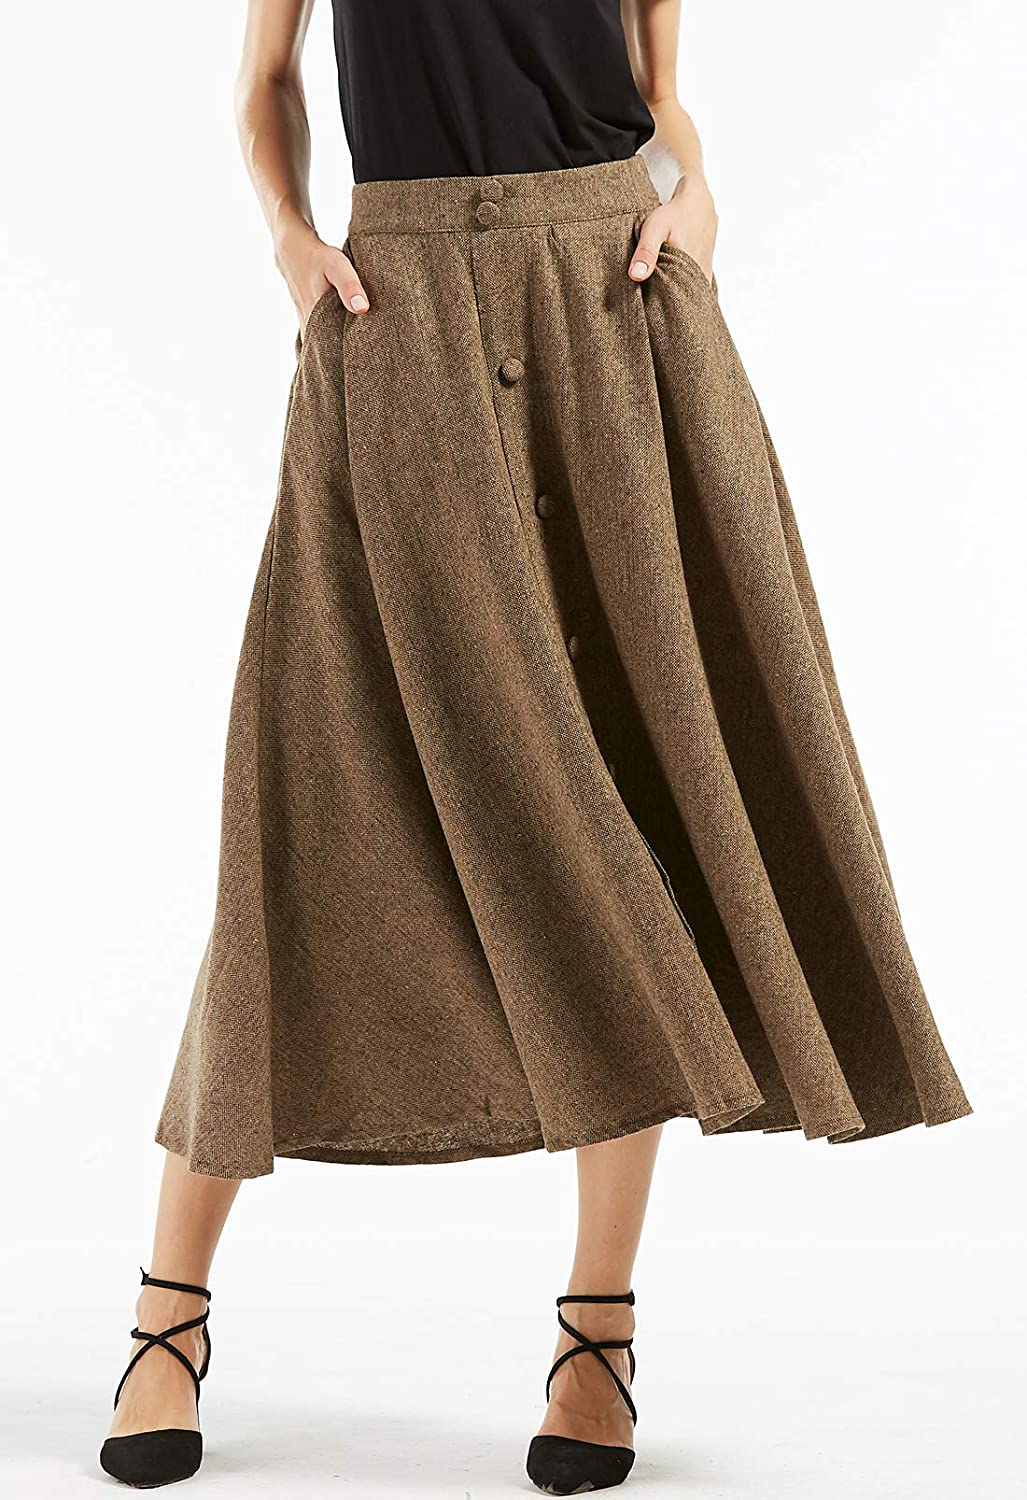 1920s Skirt History chouyatou Womans Vintage High Waist Front Button Long Skirt with Pockets $35.98 AT vintagedancer.com